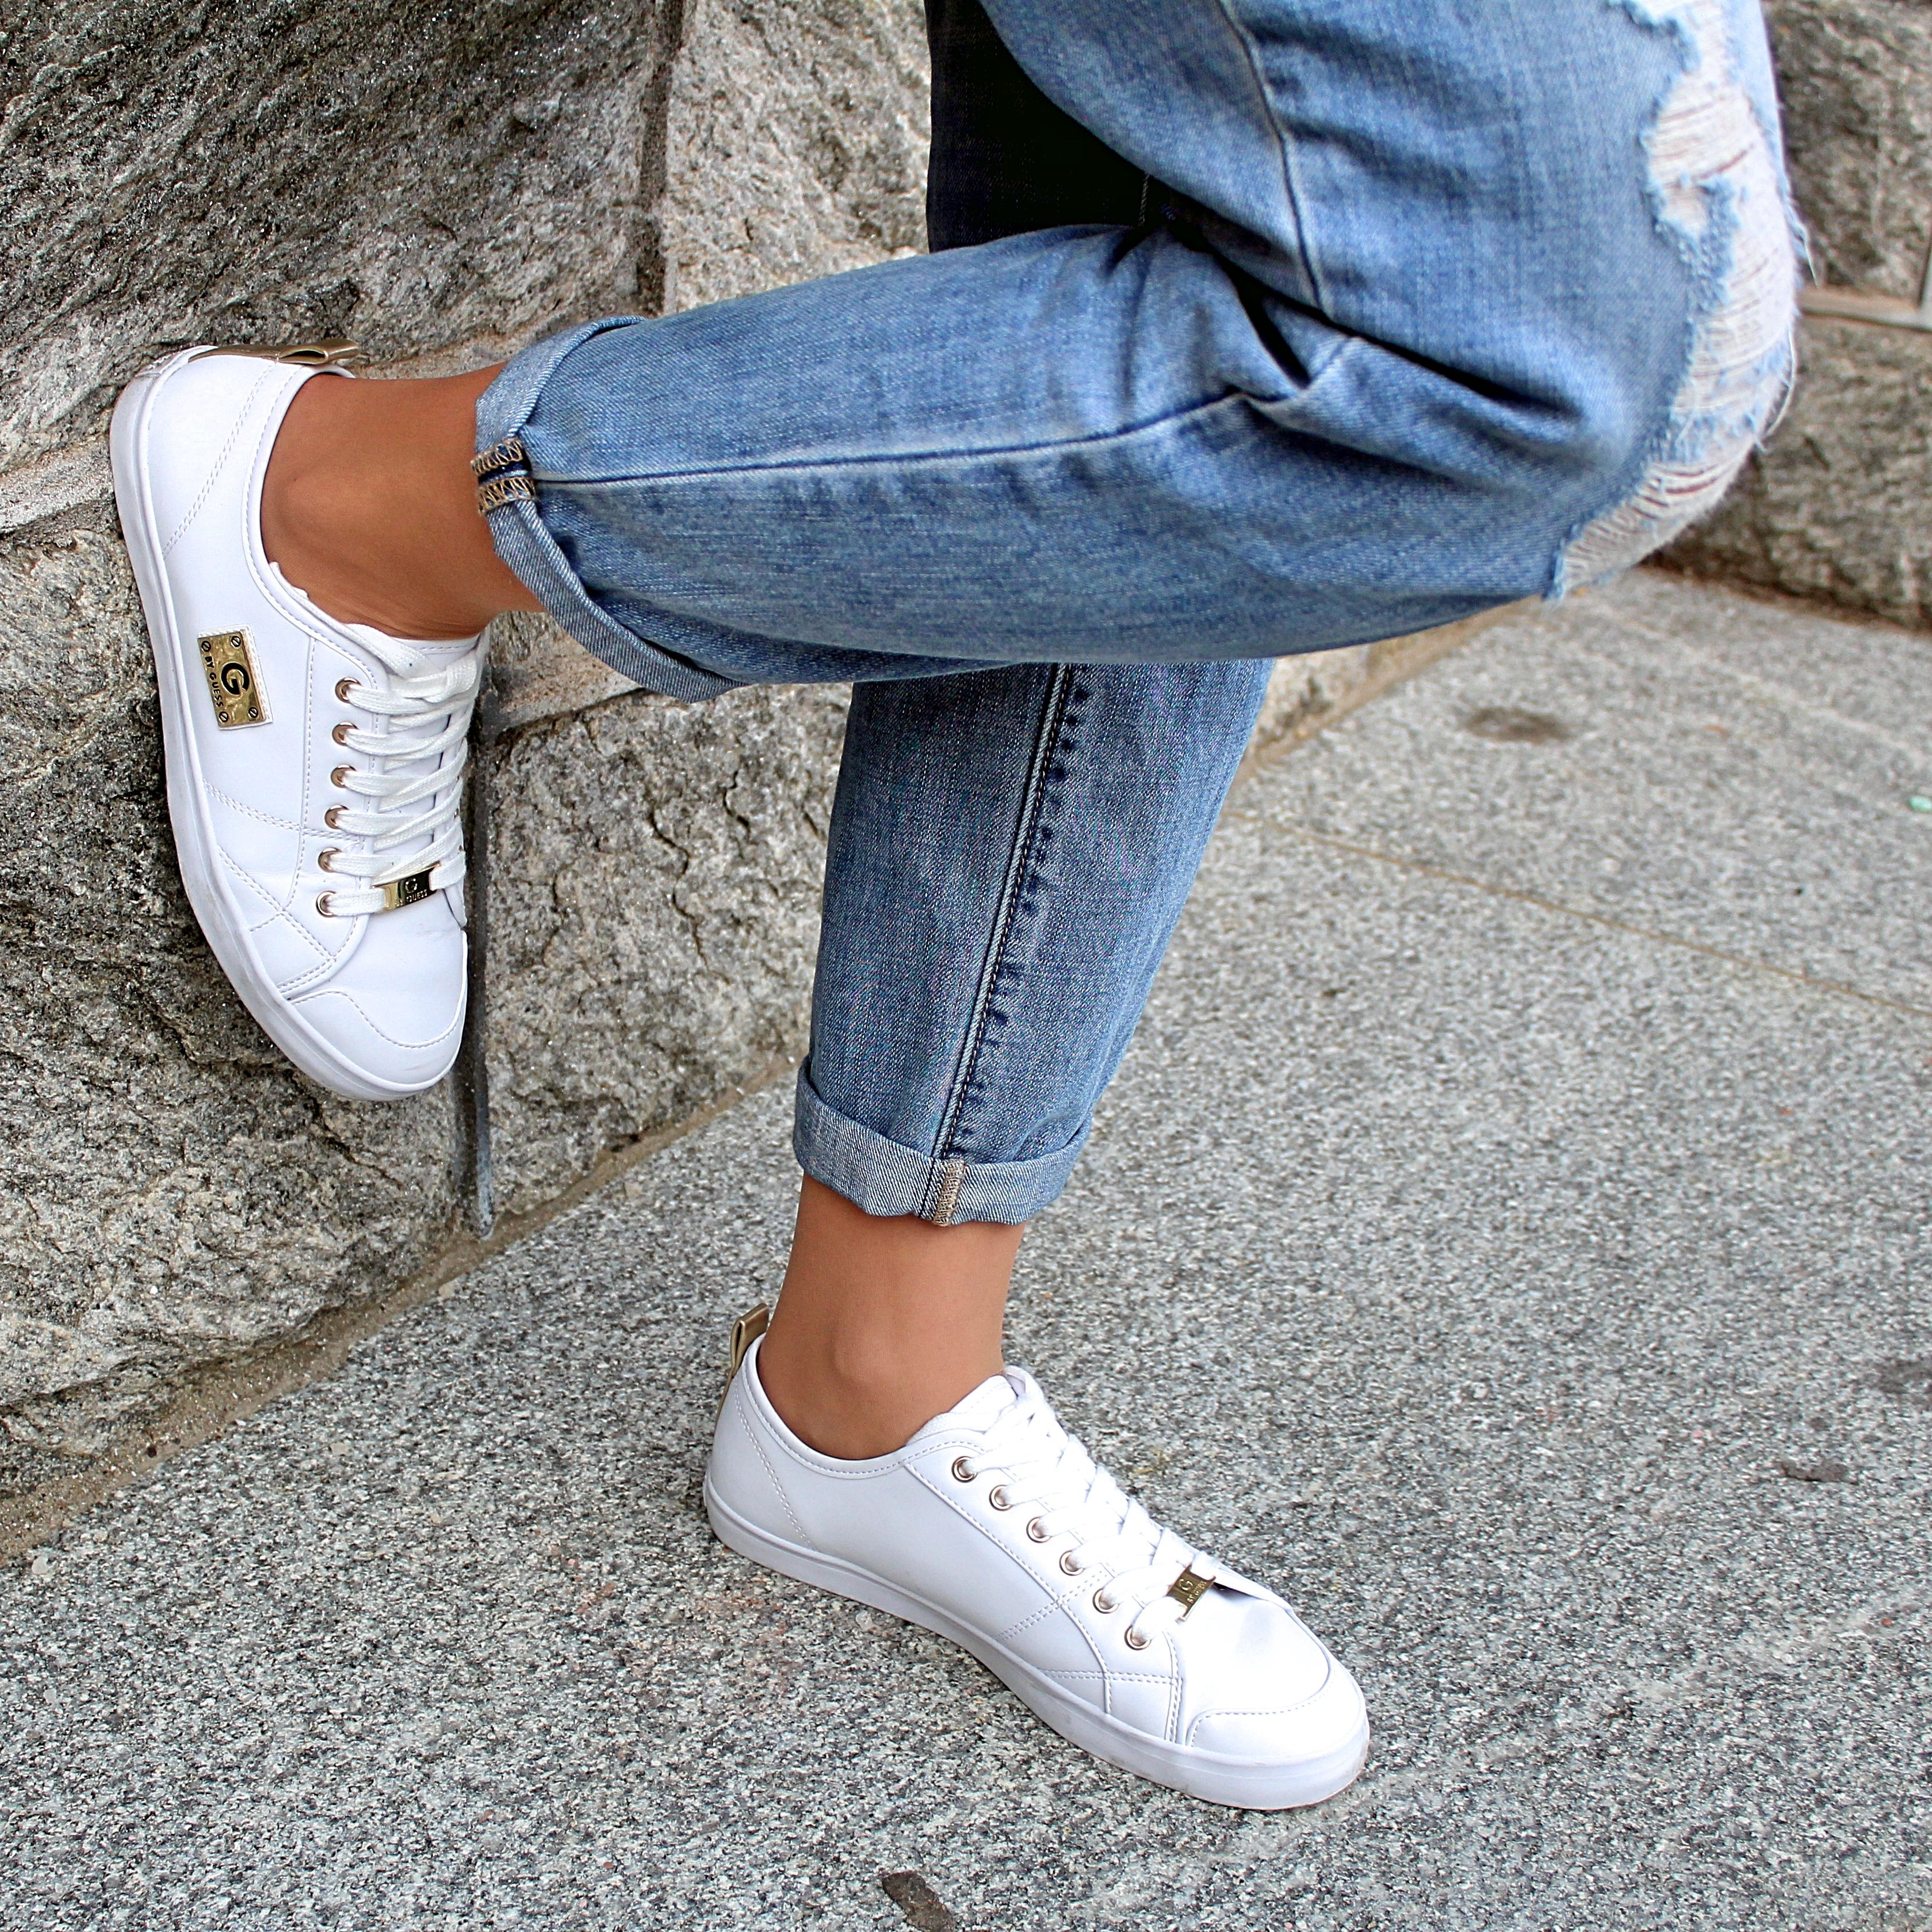 3c40e31e3d674 White guess sneakers with gold details Guess Shoes